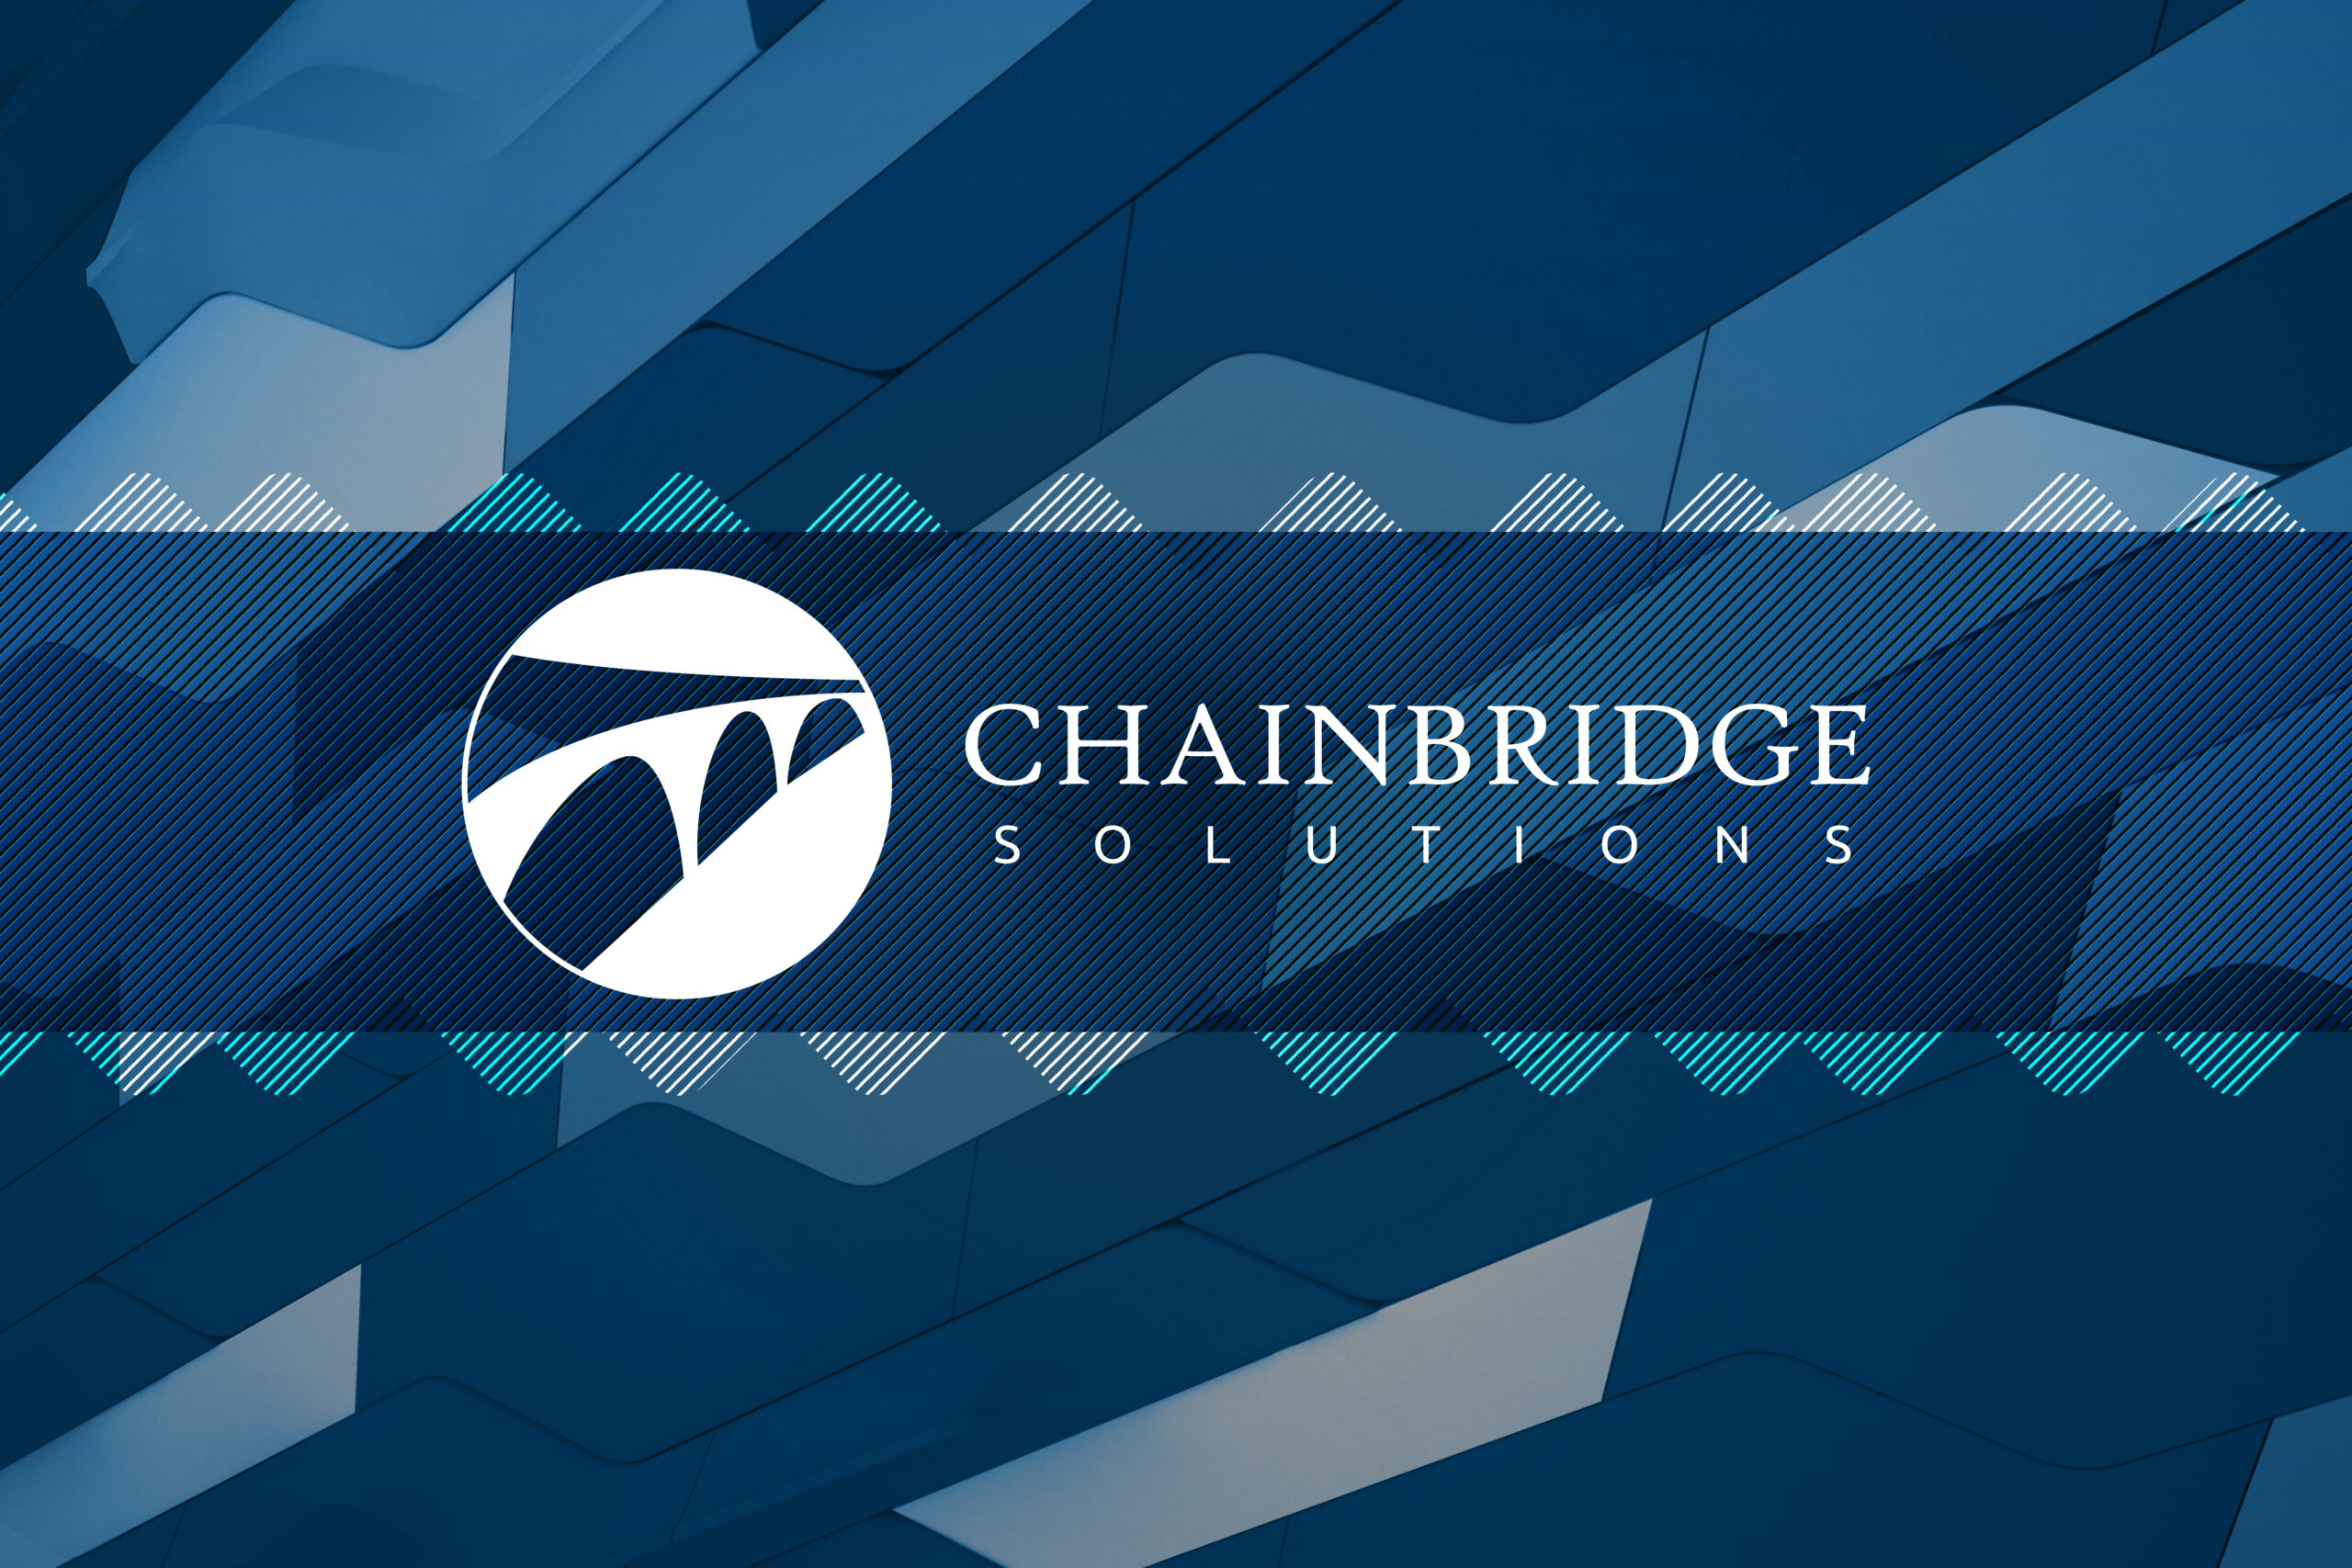 Chainbridge Solutions